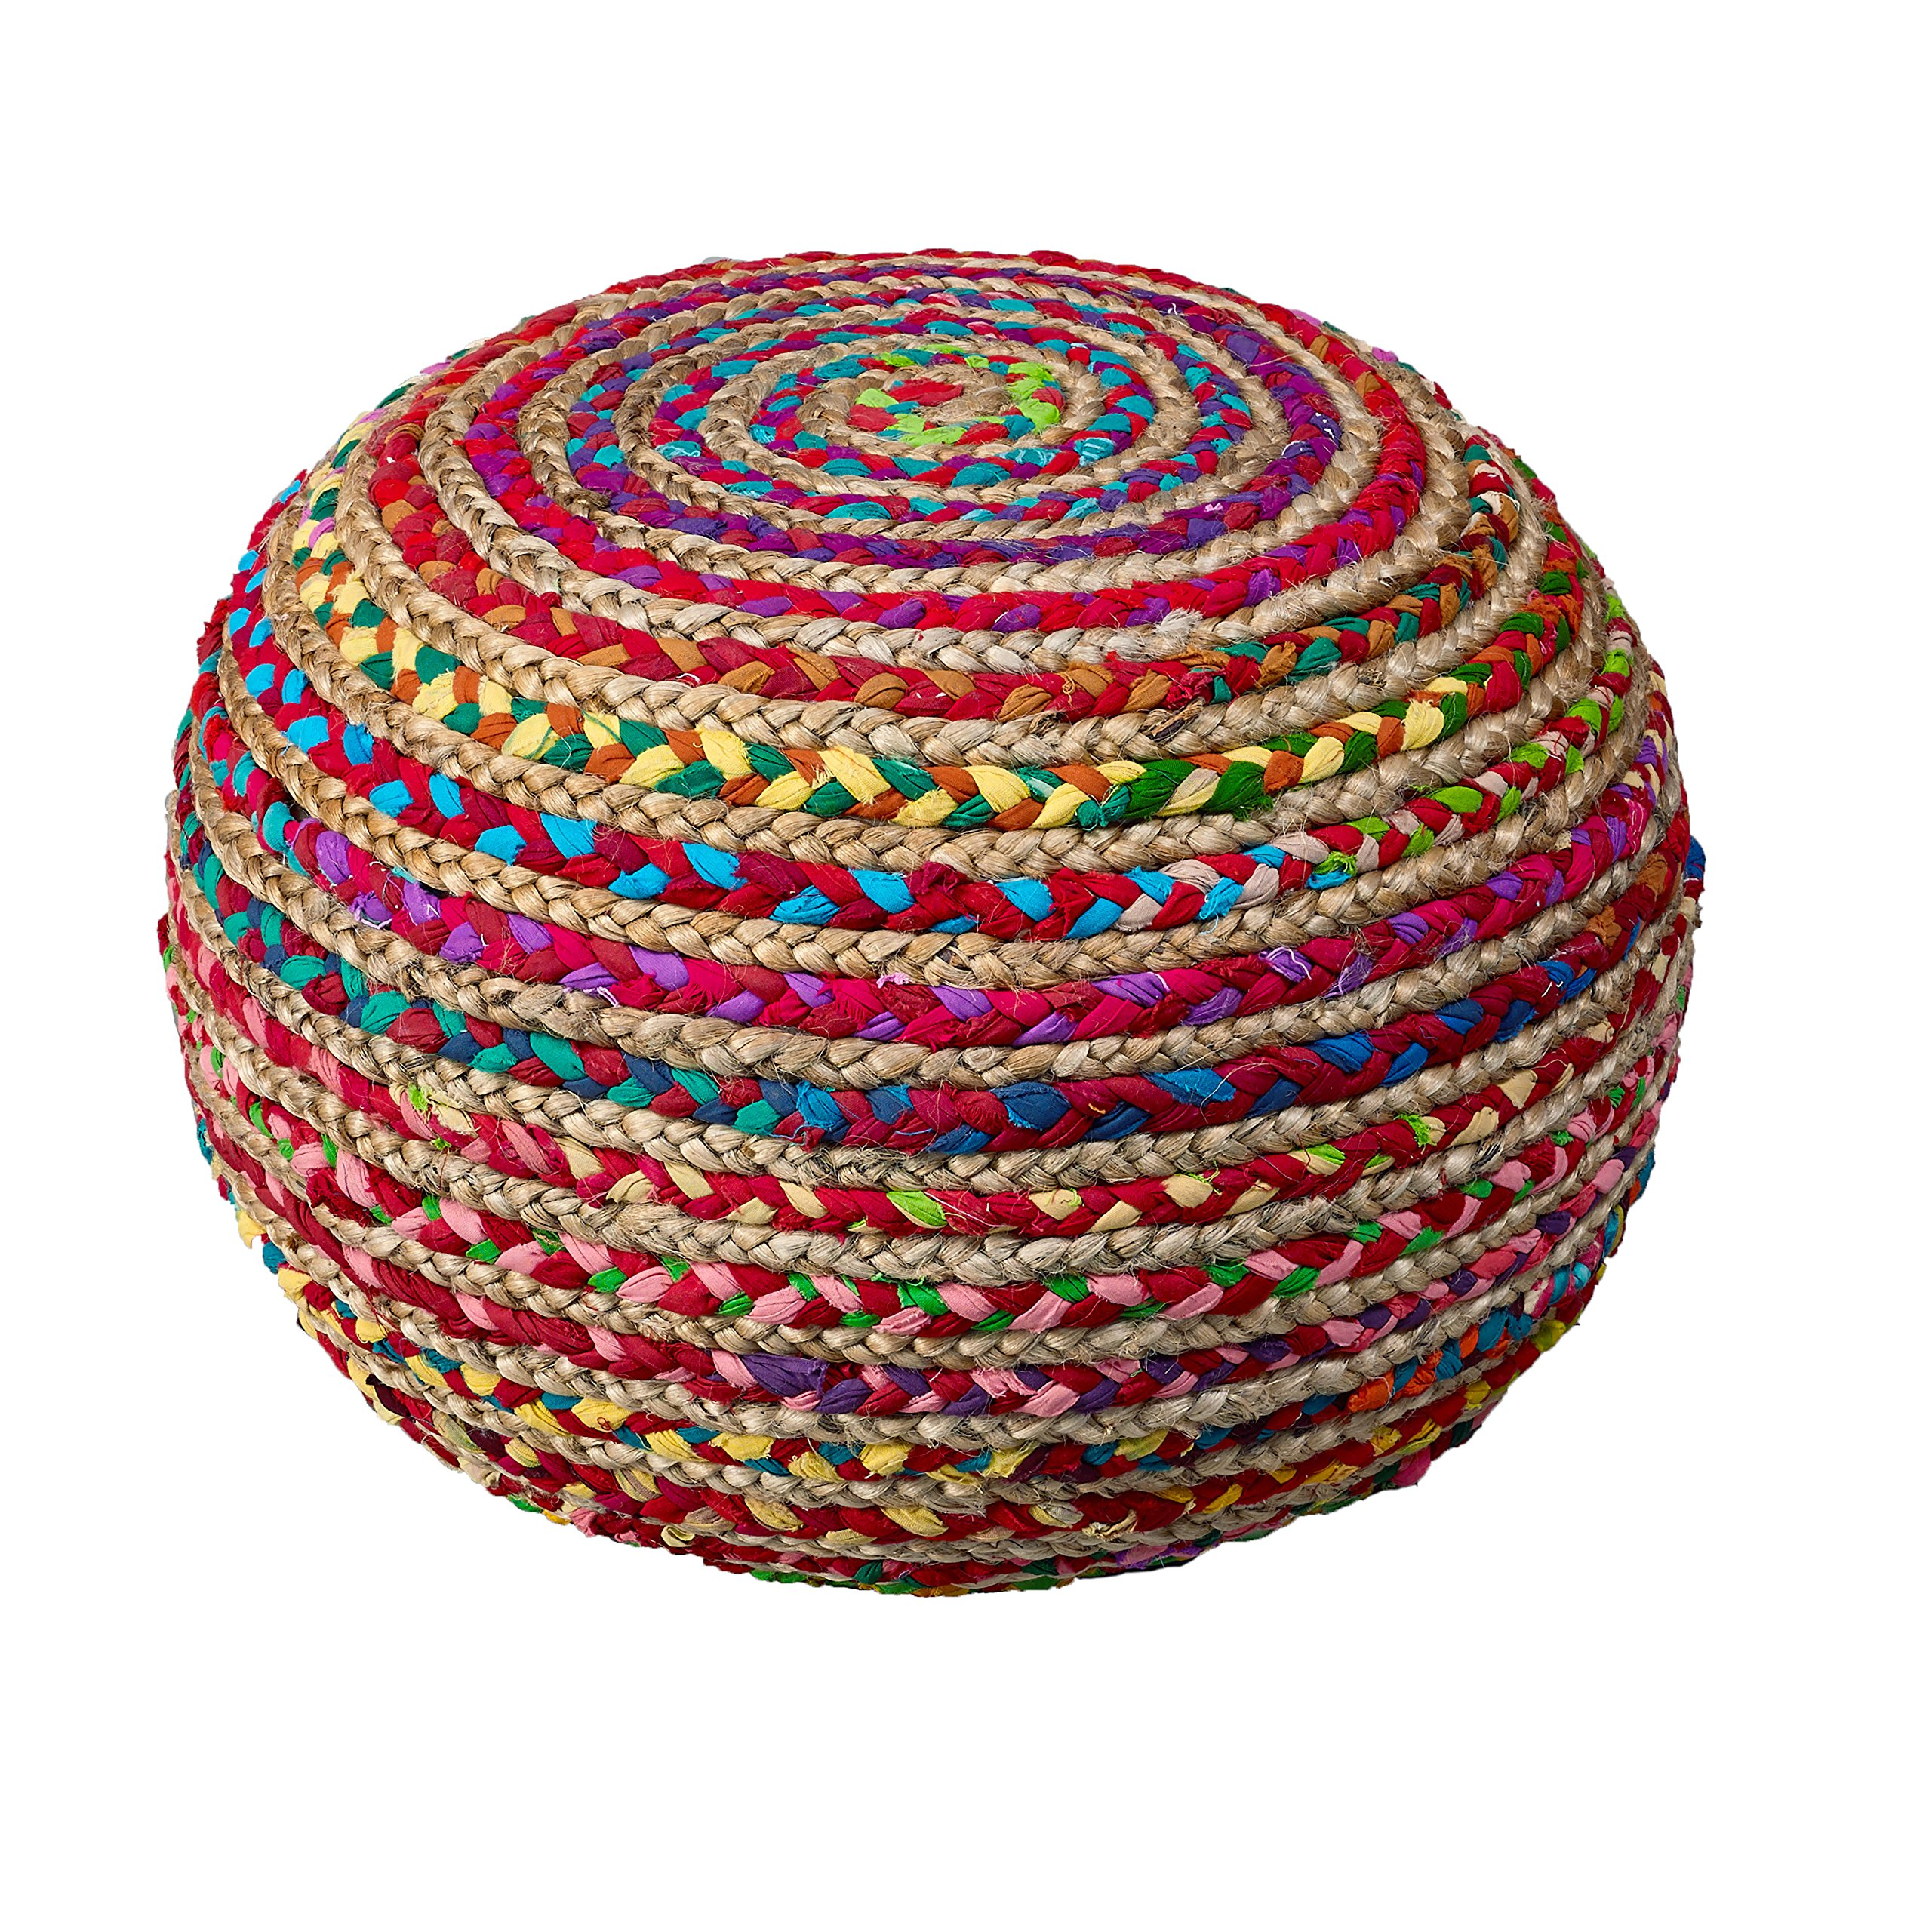 L.R. Resources Boho Beauty Braided Pouf Ottoman, 14'' x 20'', Multicolor by LR Resources